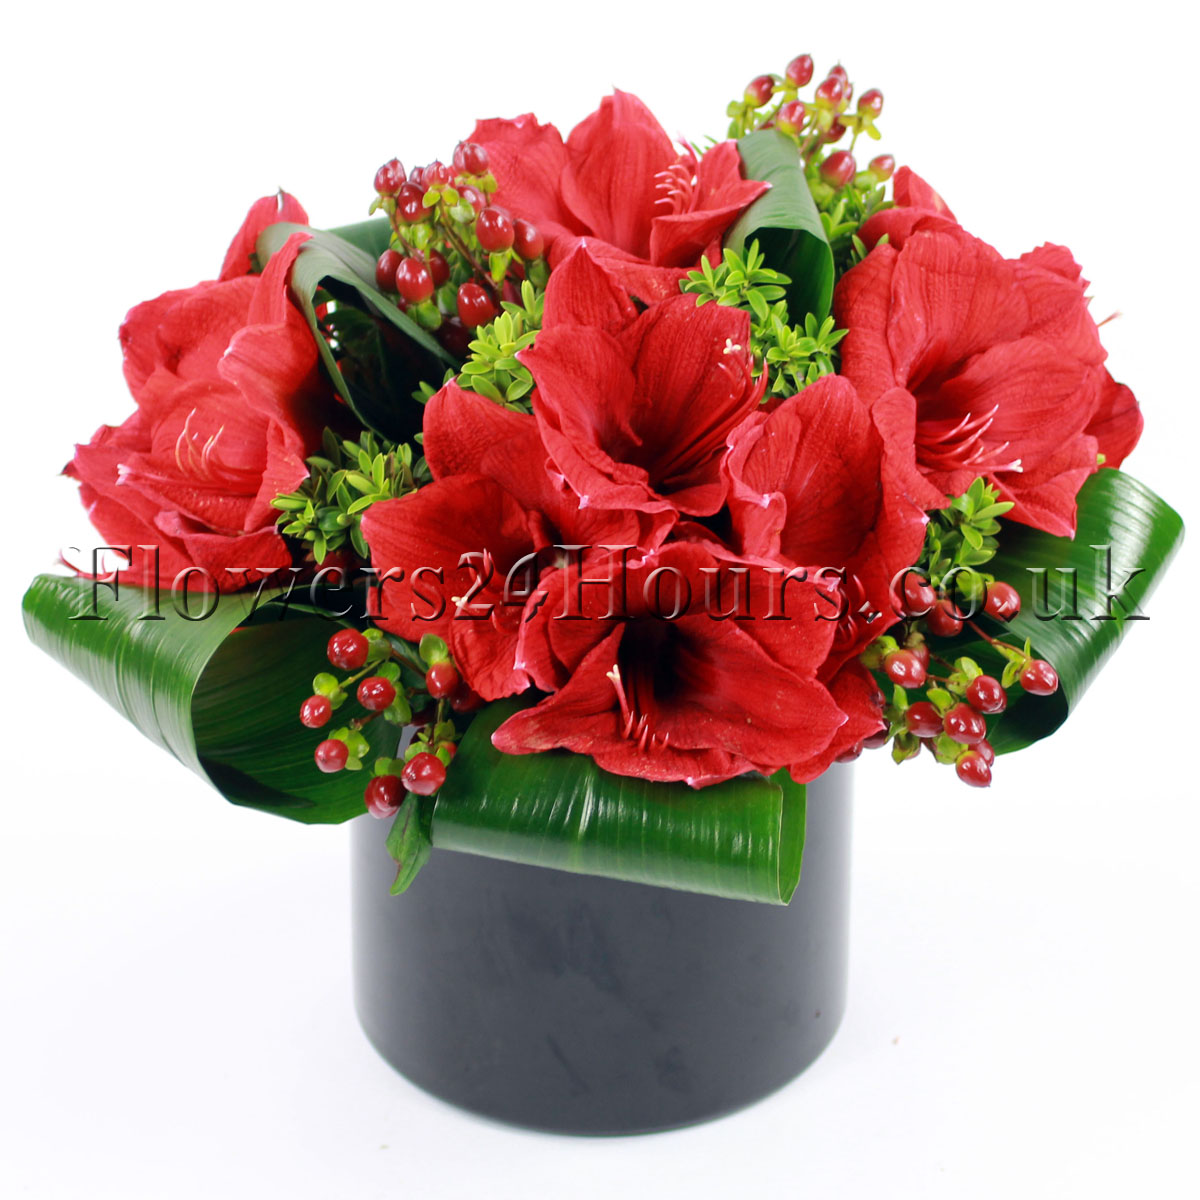 Amaryllis flower delivery UK by top London florists anf flower delivery shops. UK gifts online / gift delivrery service F24H